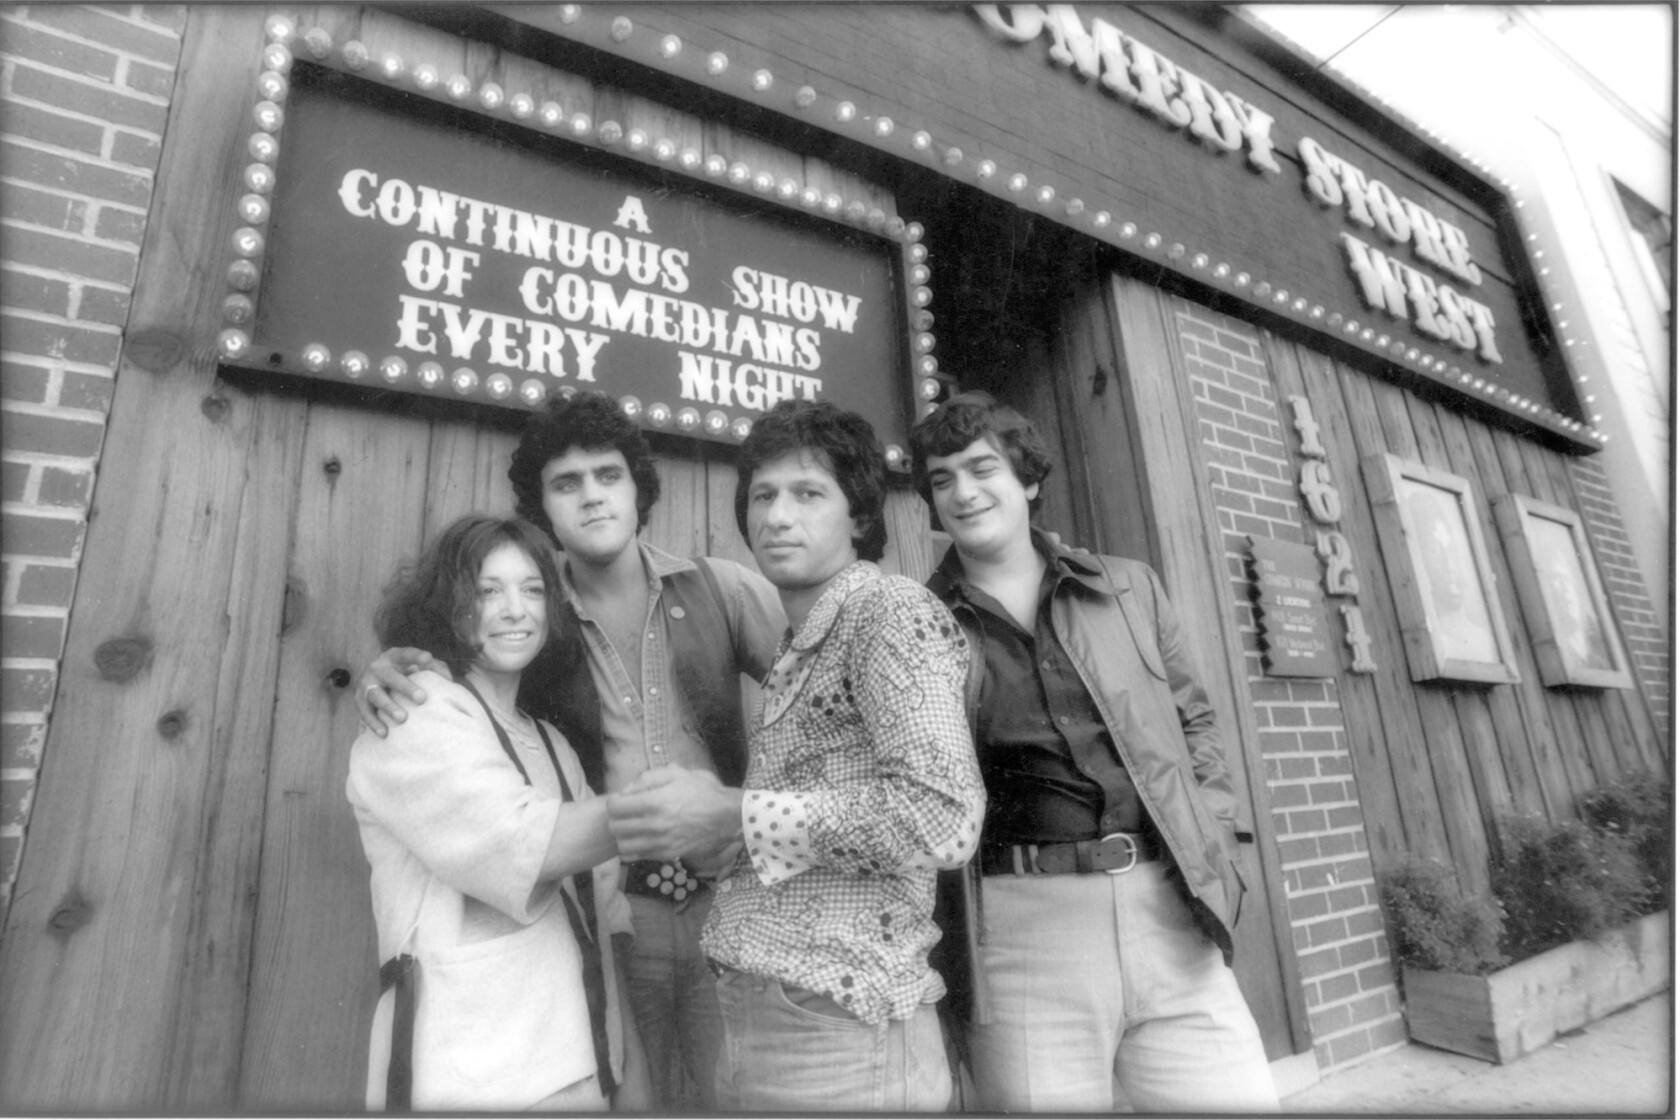 Mitzi Shore's Comedy Store legacy was inked long ago, as